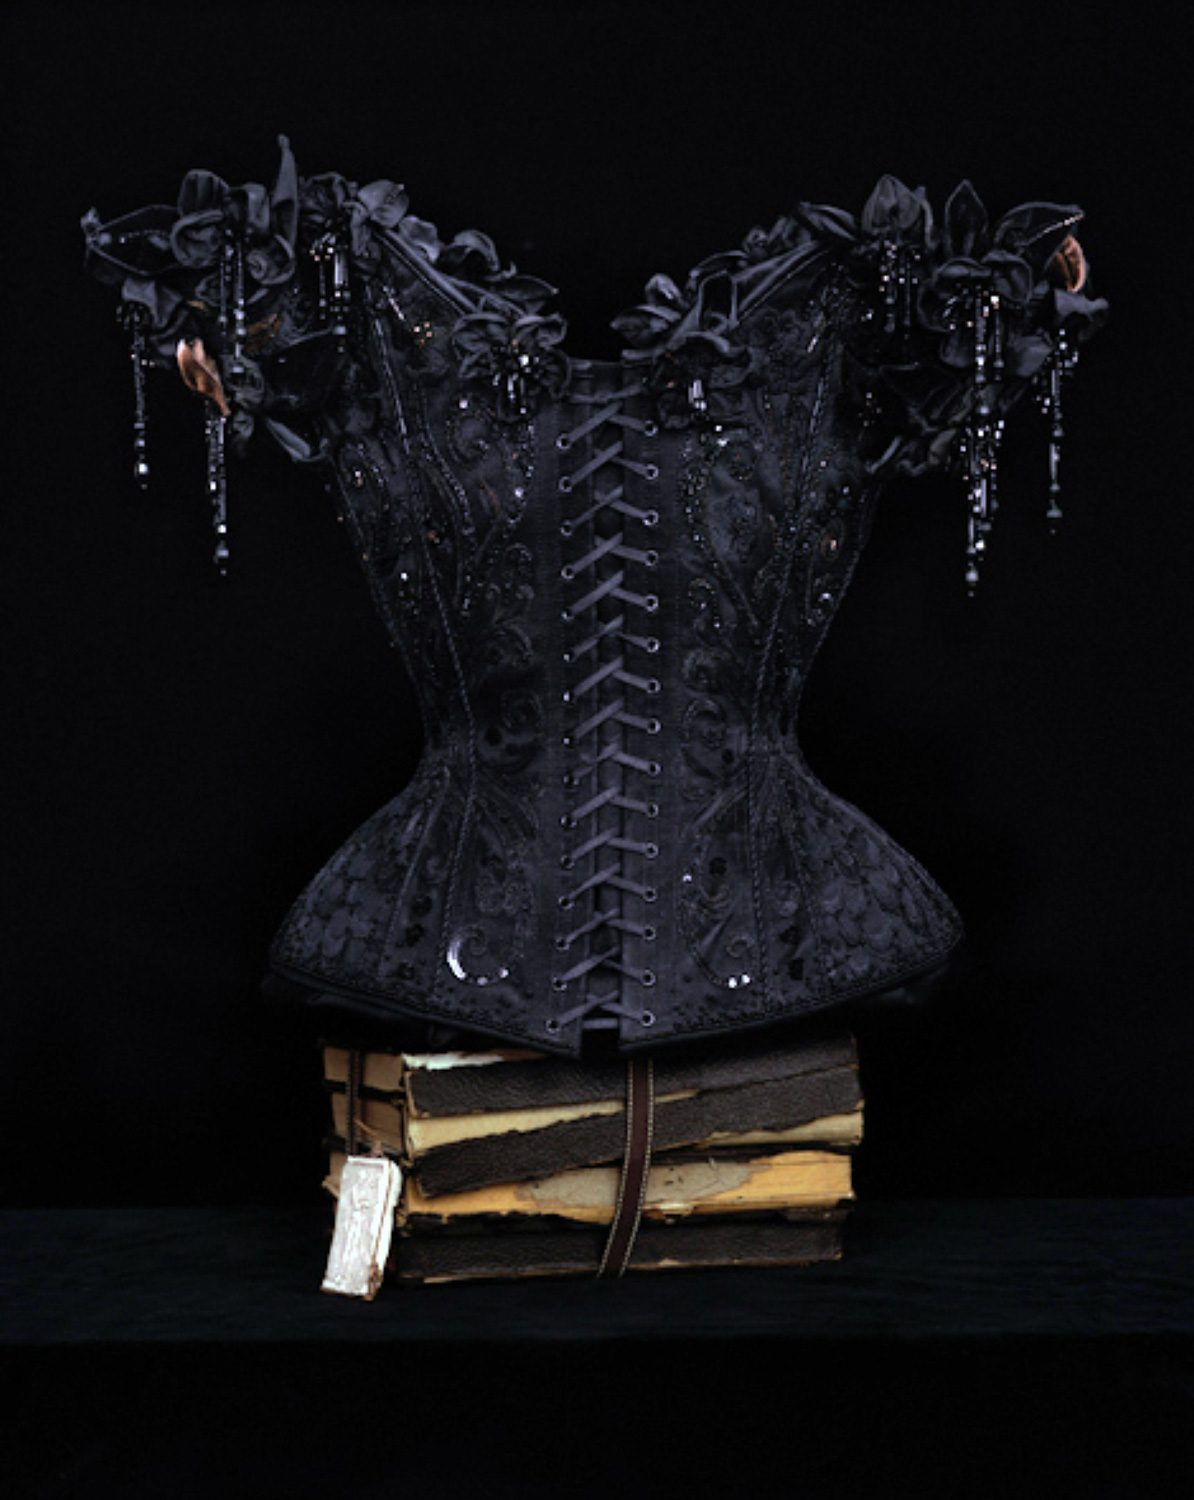 Still life with a corset by Mr. Pearl